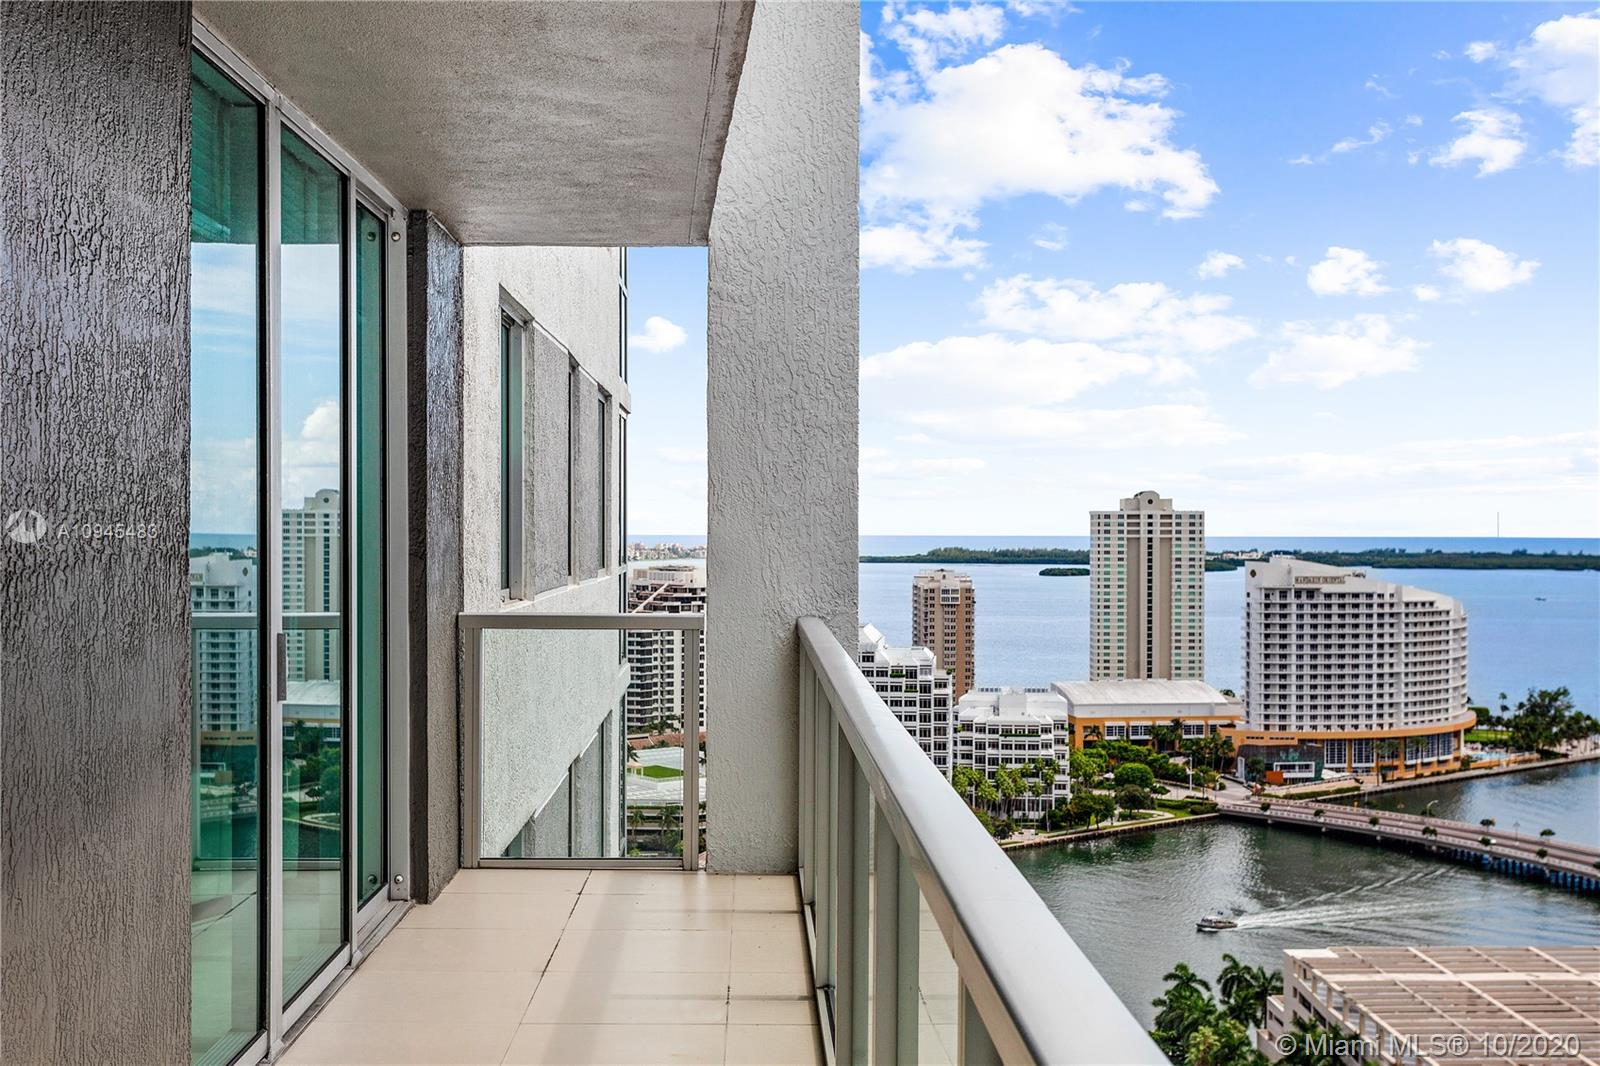 BEAUTIFULLY FURNISHED WITH MANY UPGRADES. AVERY LARGE UNIT AND SEPARATE WALK-IN CLOSET. THIS LUXURY SMART BUILDING OFFERS HIGH END GYM, 2 INFINITY POOLS, JACUZZI, BUSINESS CENTER AND 24 HOURS SECURITY. PARKING SPACE # 3031 BUSINESS CENTER AND 24 HOURS SECURITY. PARKING SPACE # 3031 + BIG STORAGE